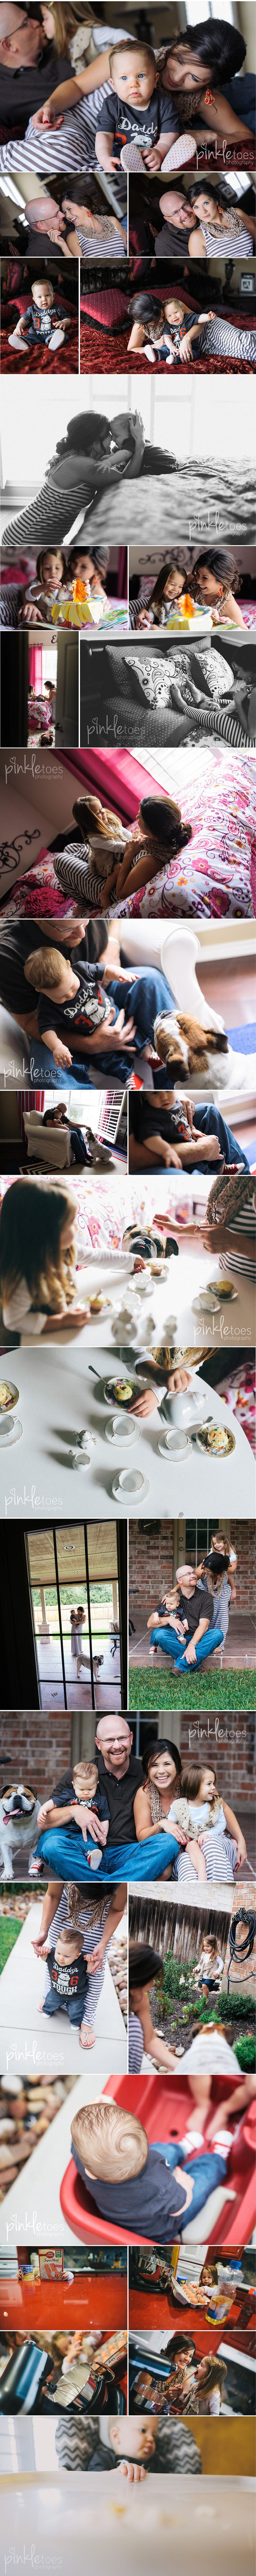 ©Pinkle Toes Photography - Lifestyle family session. The one of the dog at the tea party kills me!